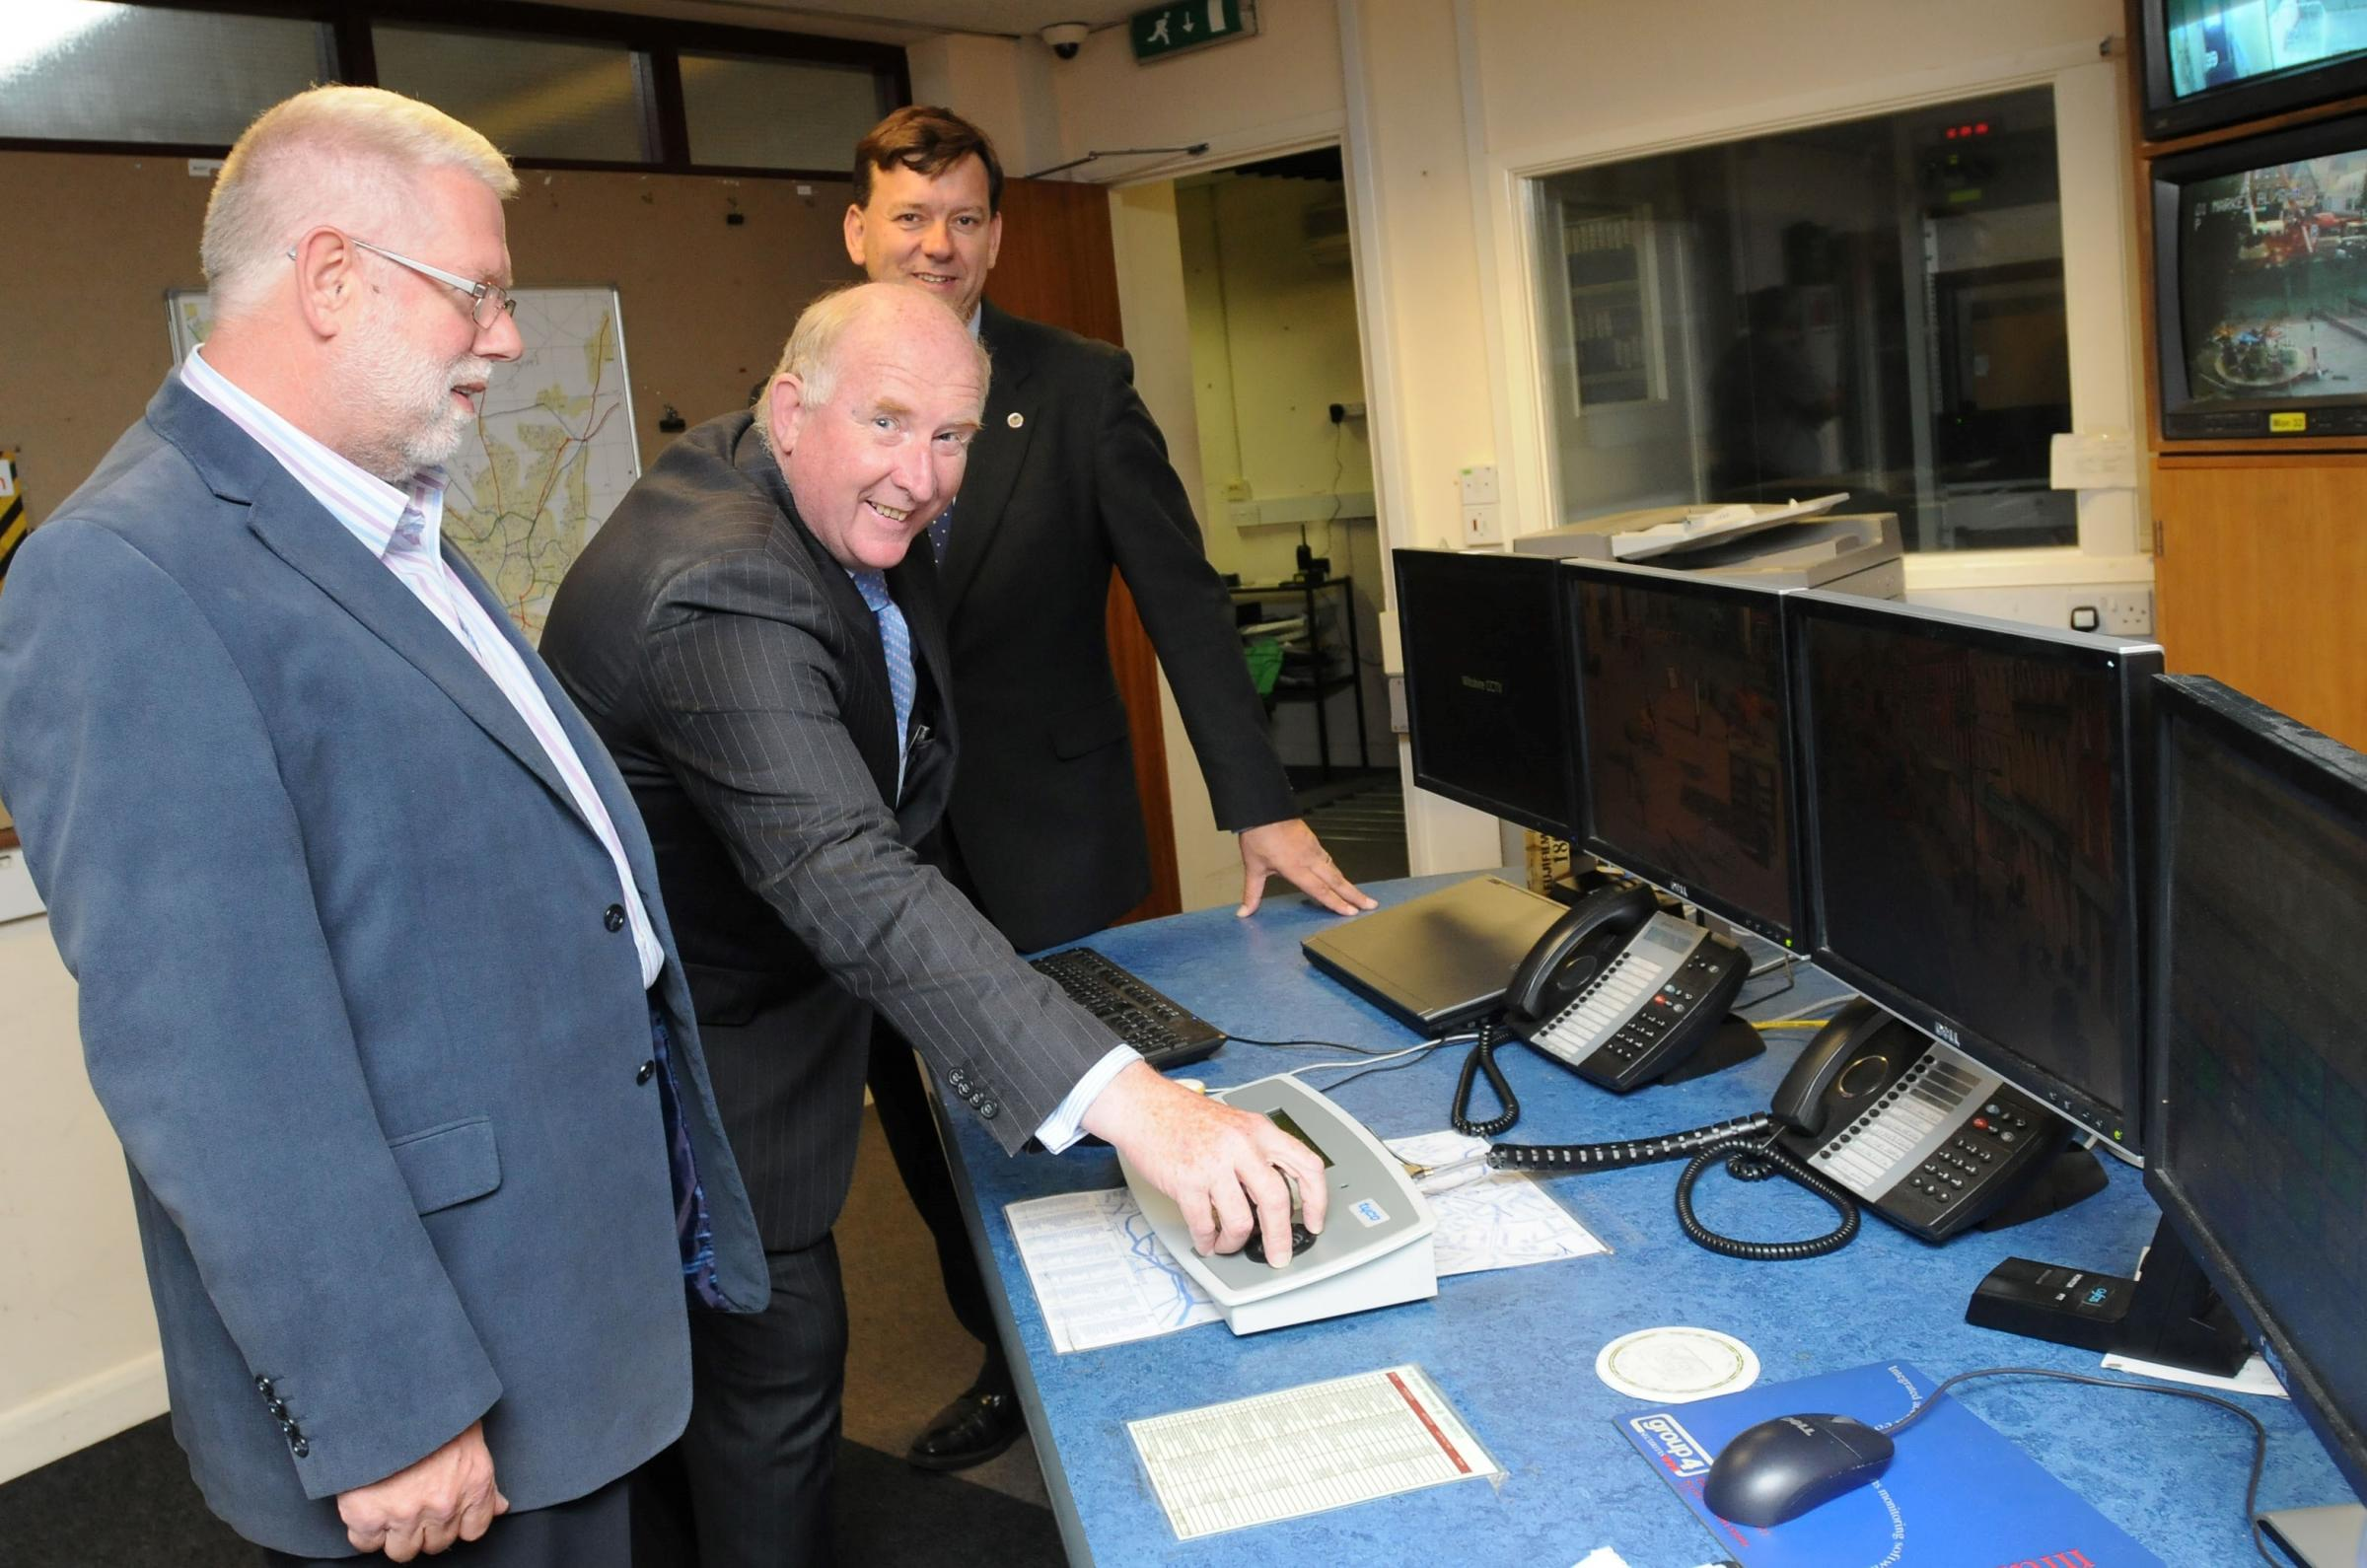 Business manager at Salisbury BID Steve Godwin, police and crime commissioner Angus Macpherson and mayor of Salisbury Andrew Roberts in the CCTV control room in Pennyfarthing House, Salisbury. DC6613P4..Picture by Tom Gregory.